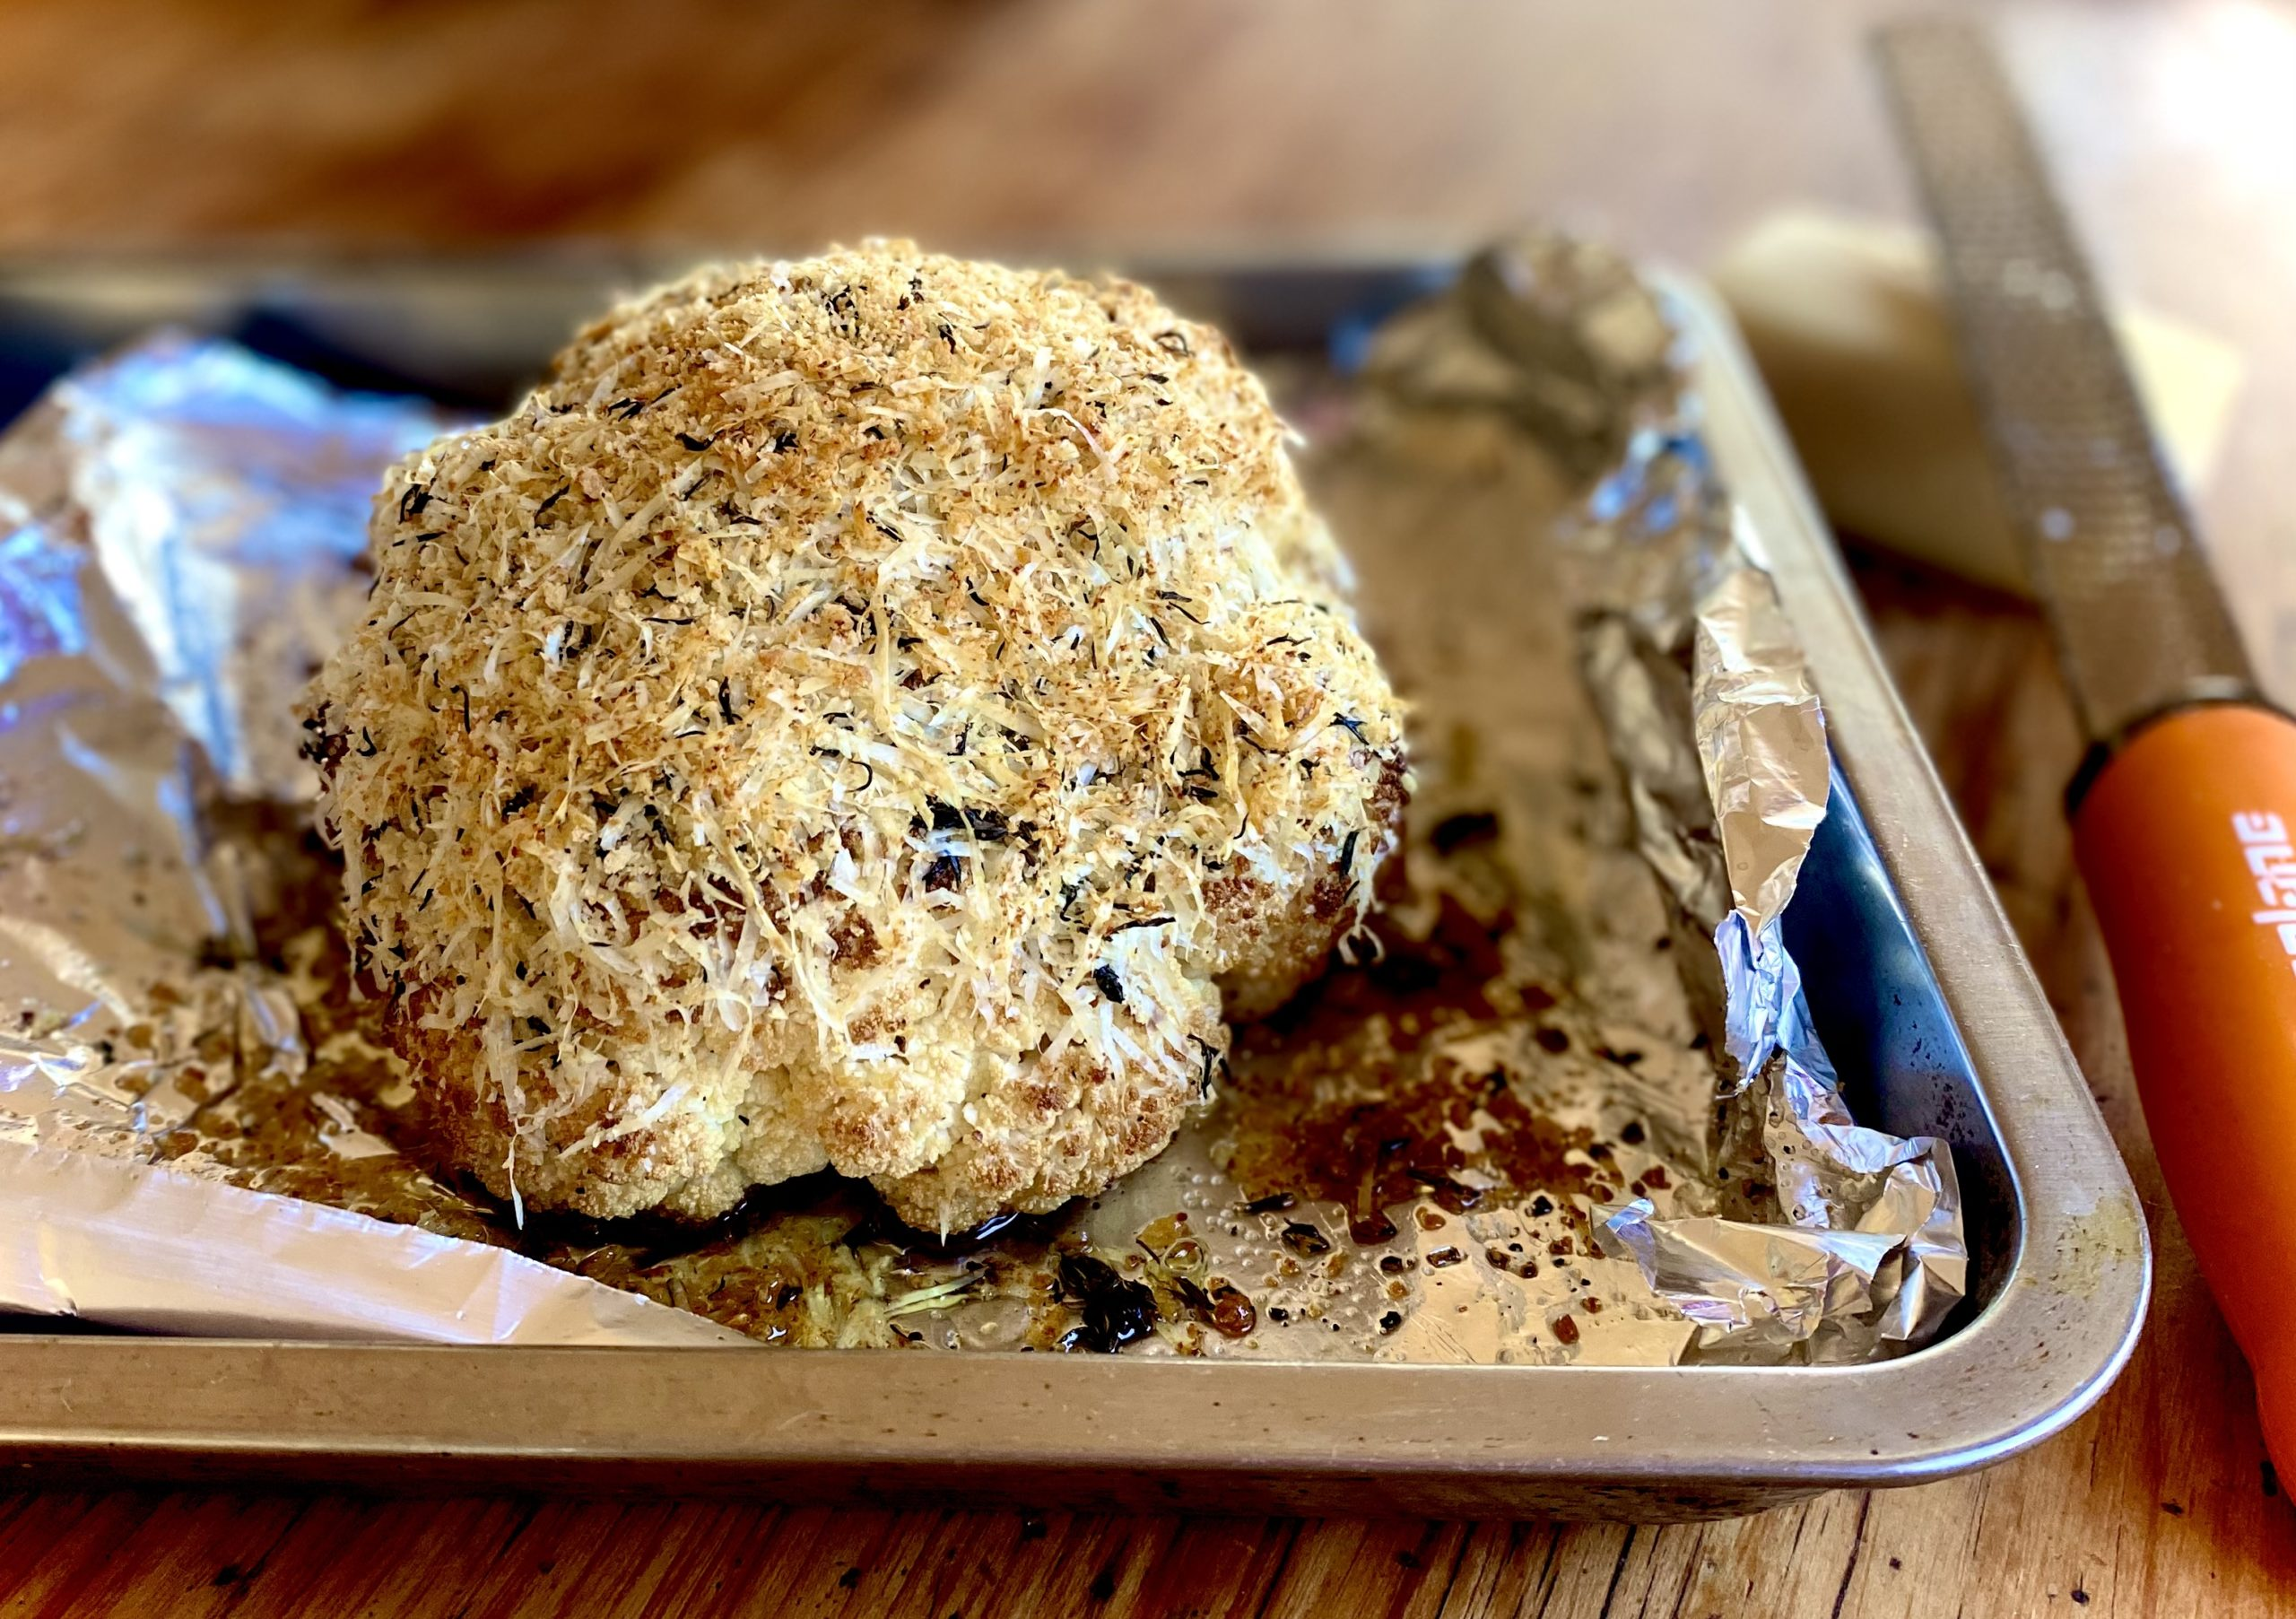 TGIFOOD: Lockdown Recipe of the Day: Roasted Cauliflower with a Panko-Parmesan crumb